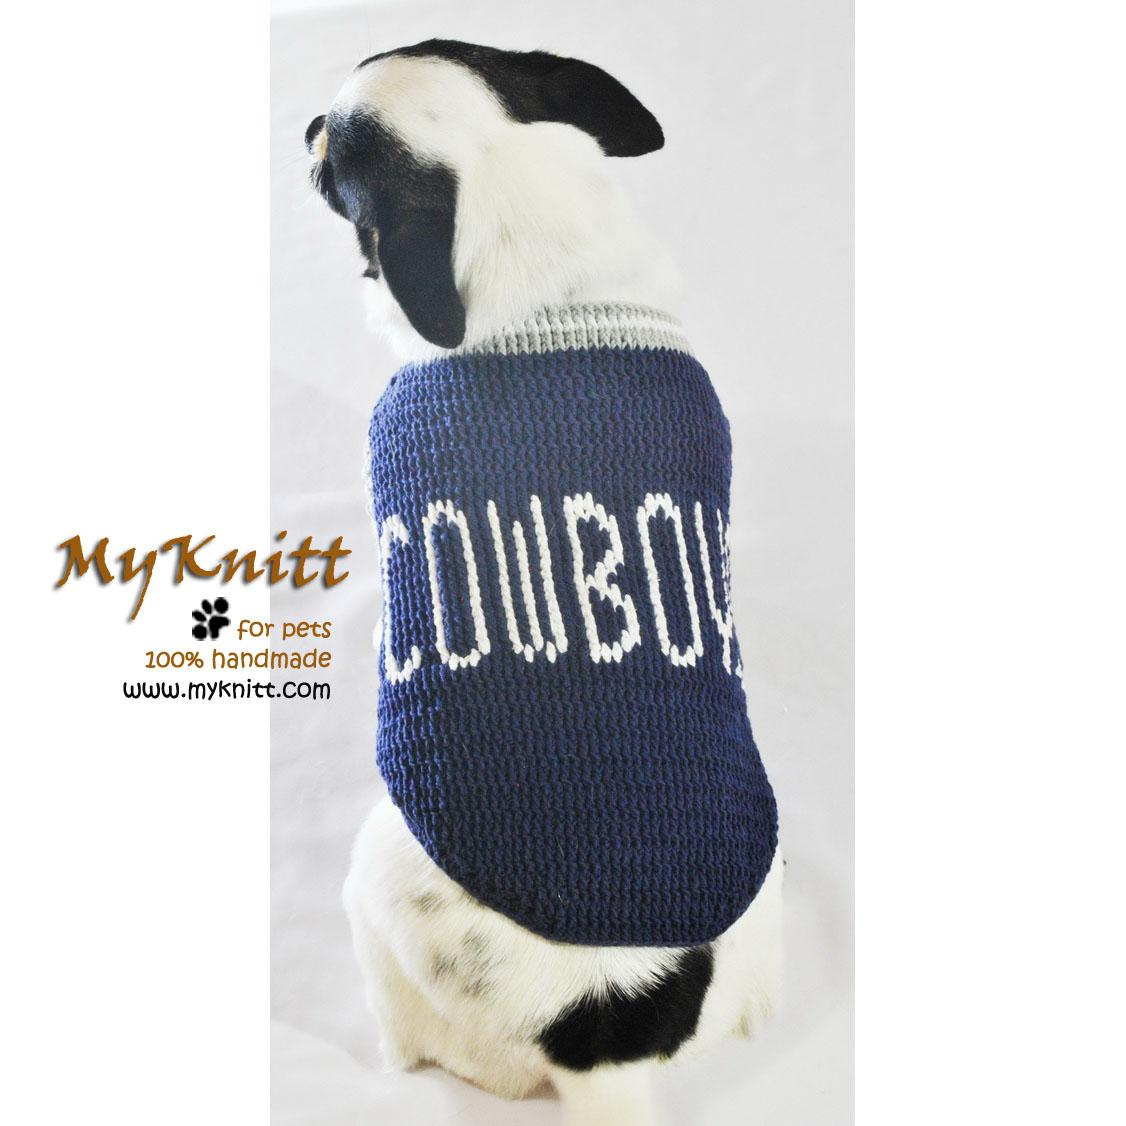 timeless design 0c476 48aca myknitt dog clothes on Twitter: